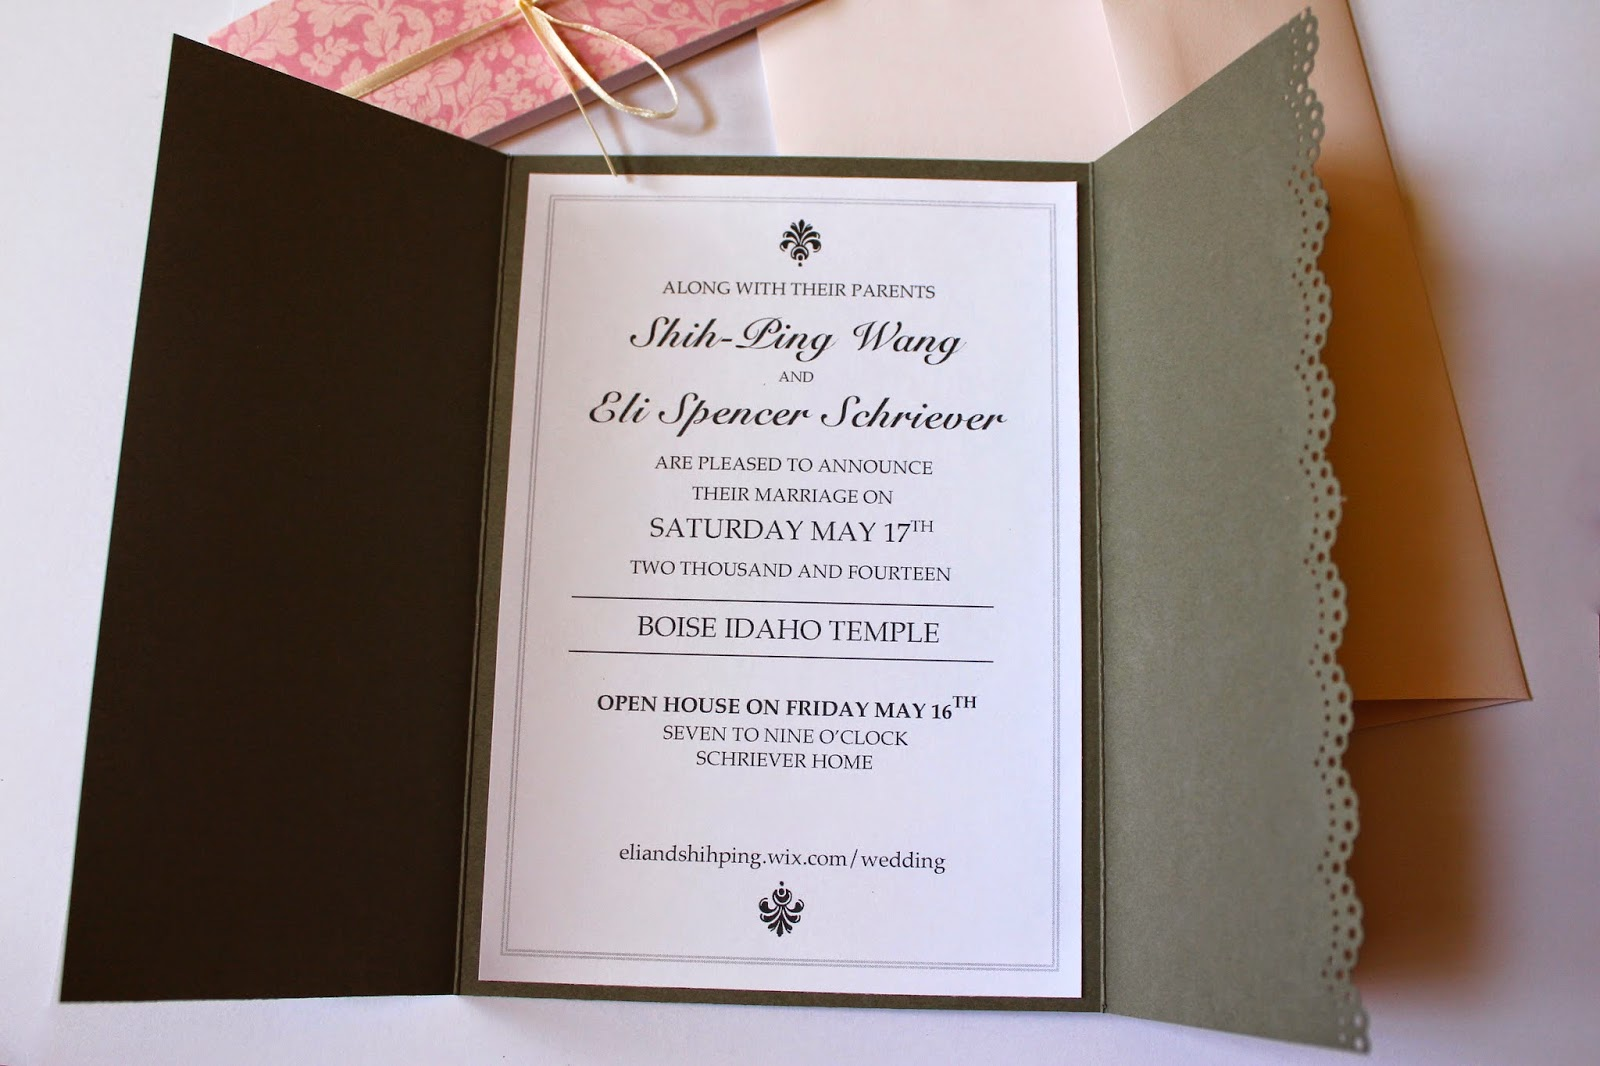 diy wedding invitations - Wedding Invitations Costco